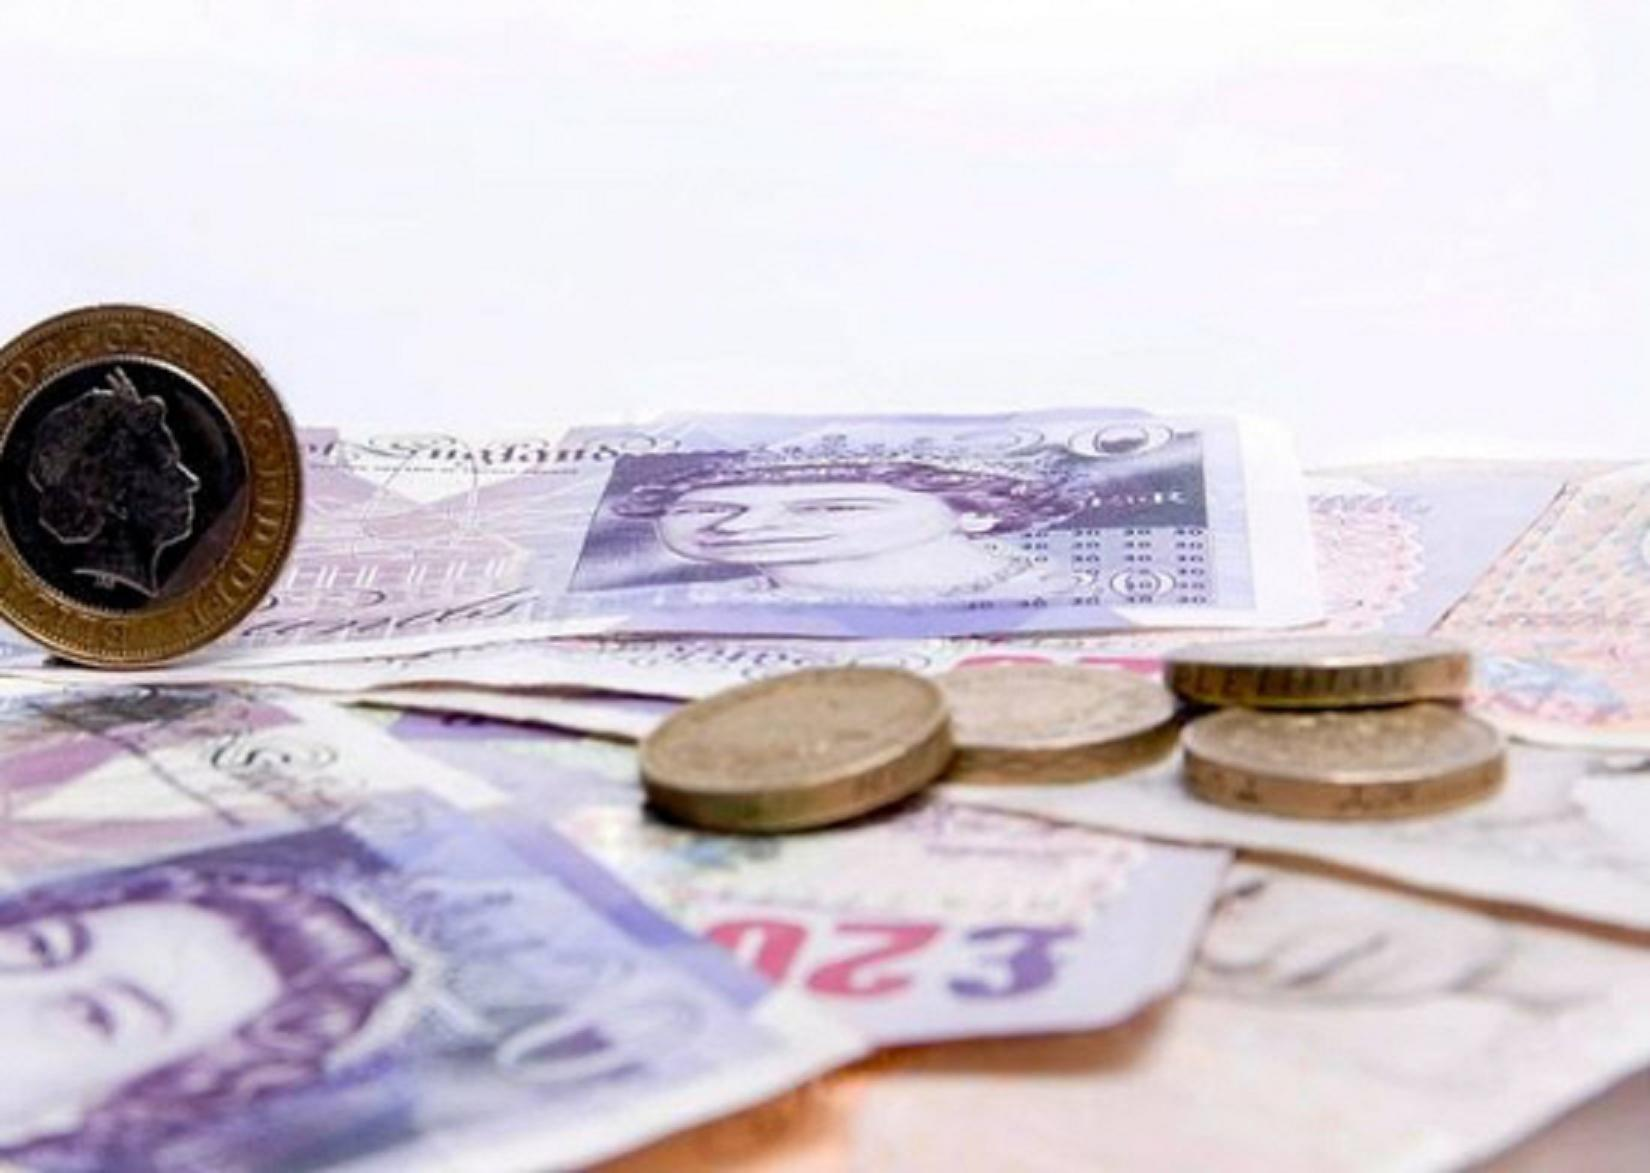 Darwen couple told to repay £5k benefits